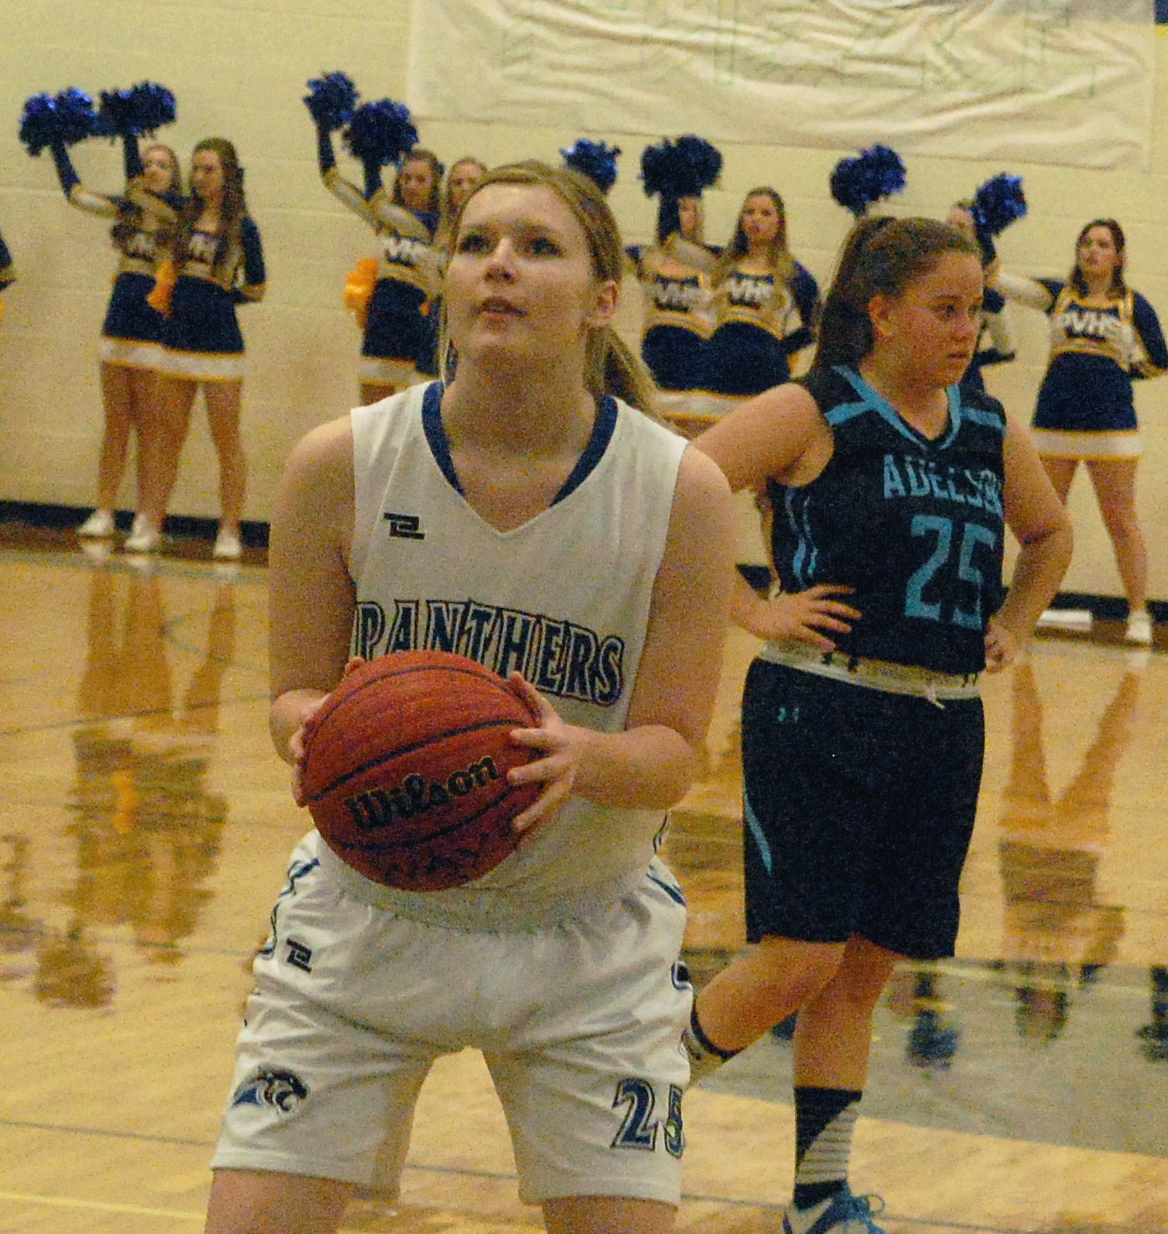 Lady Panthers remain tied for league lead